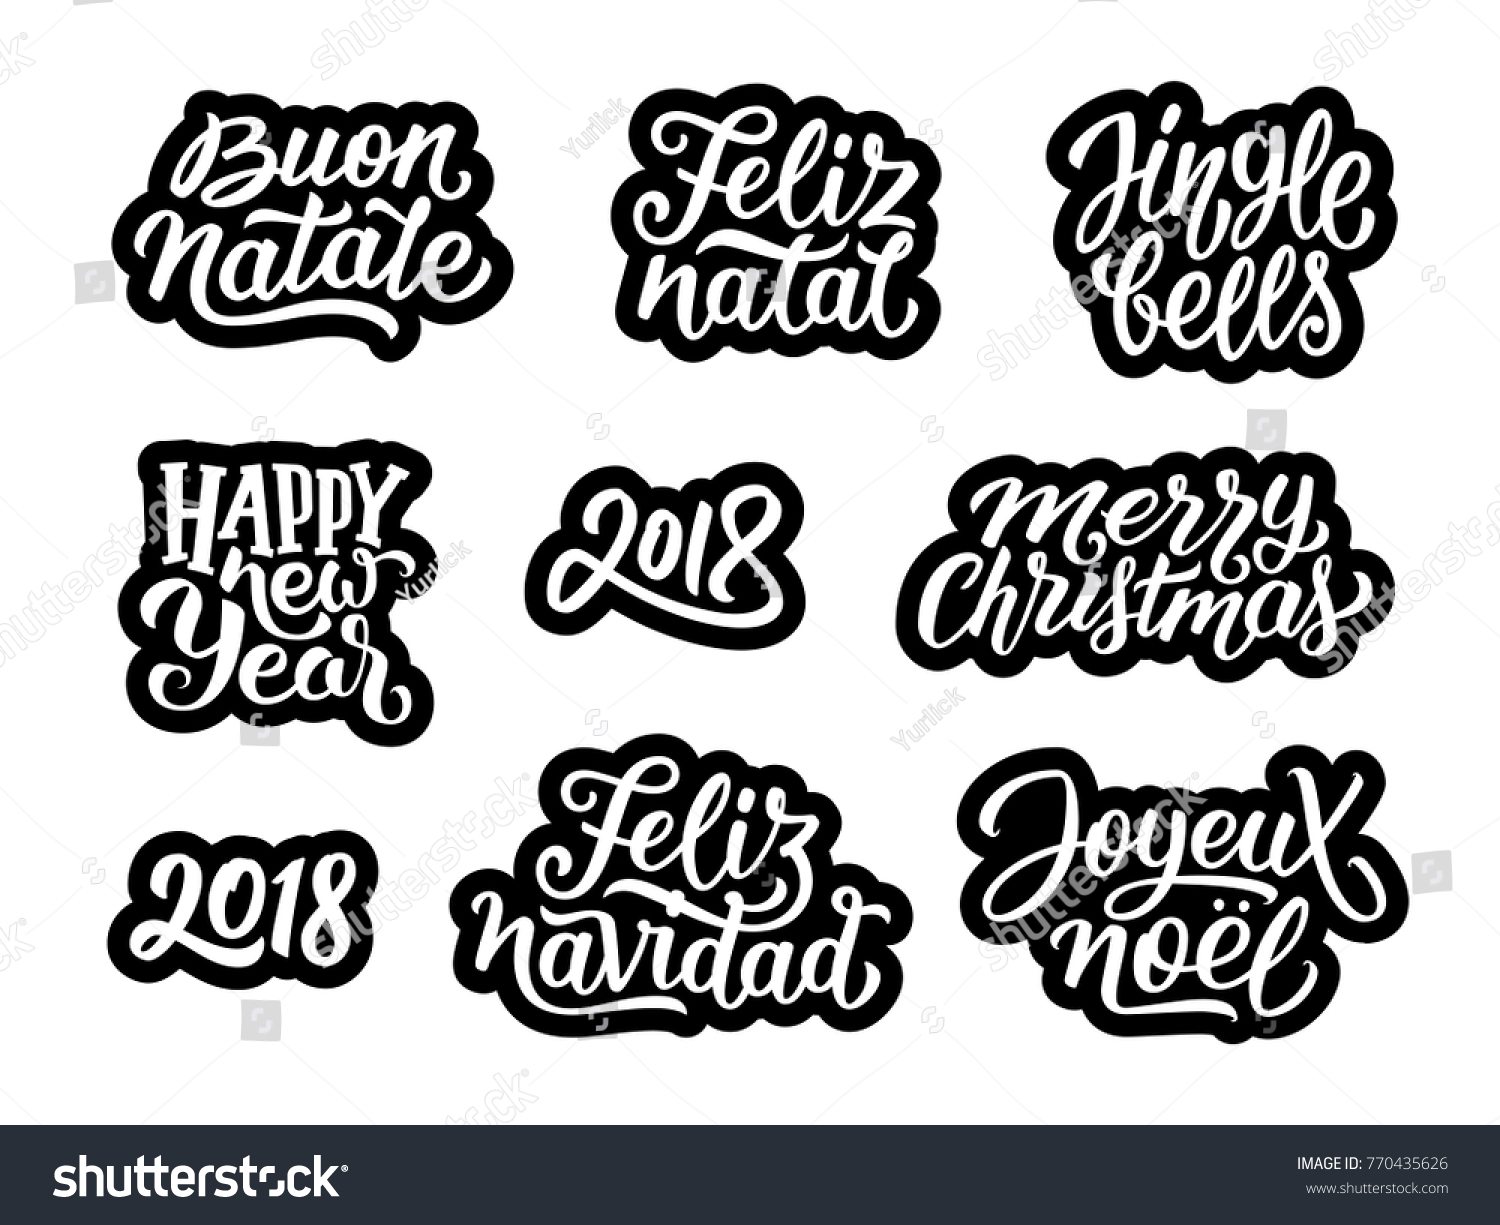 natal new year stickers merry christmas and happy new year 2018. Black Bedroom Furniture Sets. Home Design Ideas